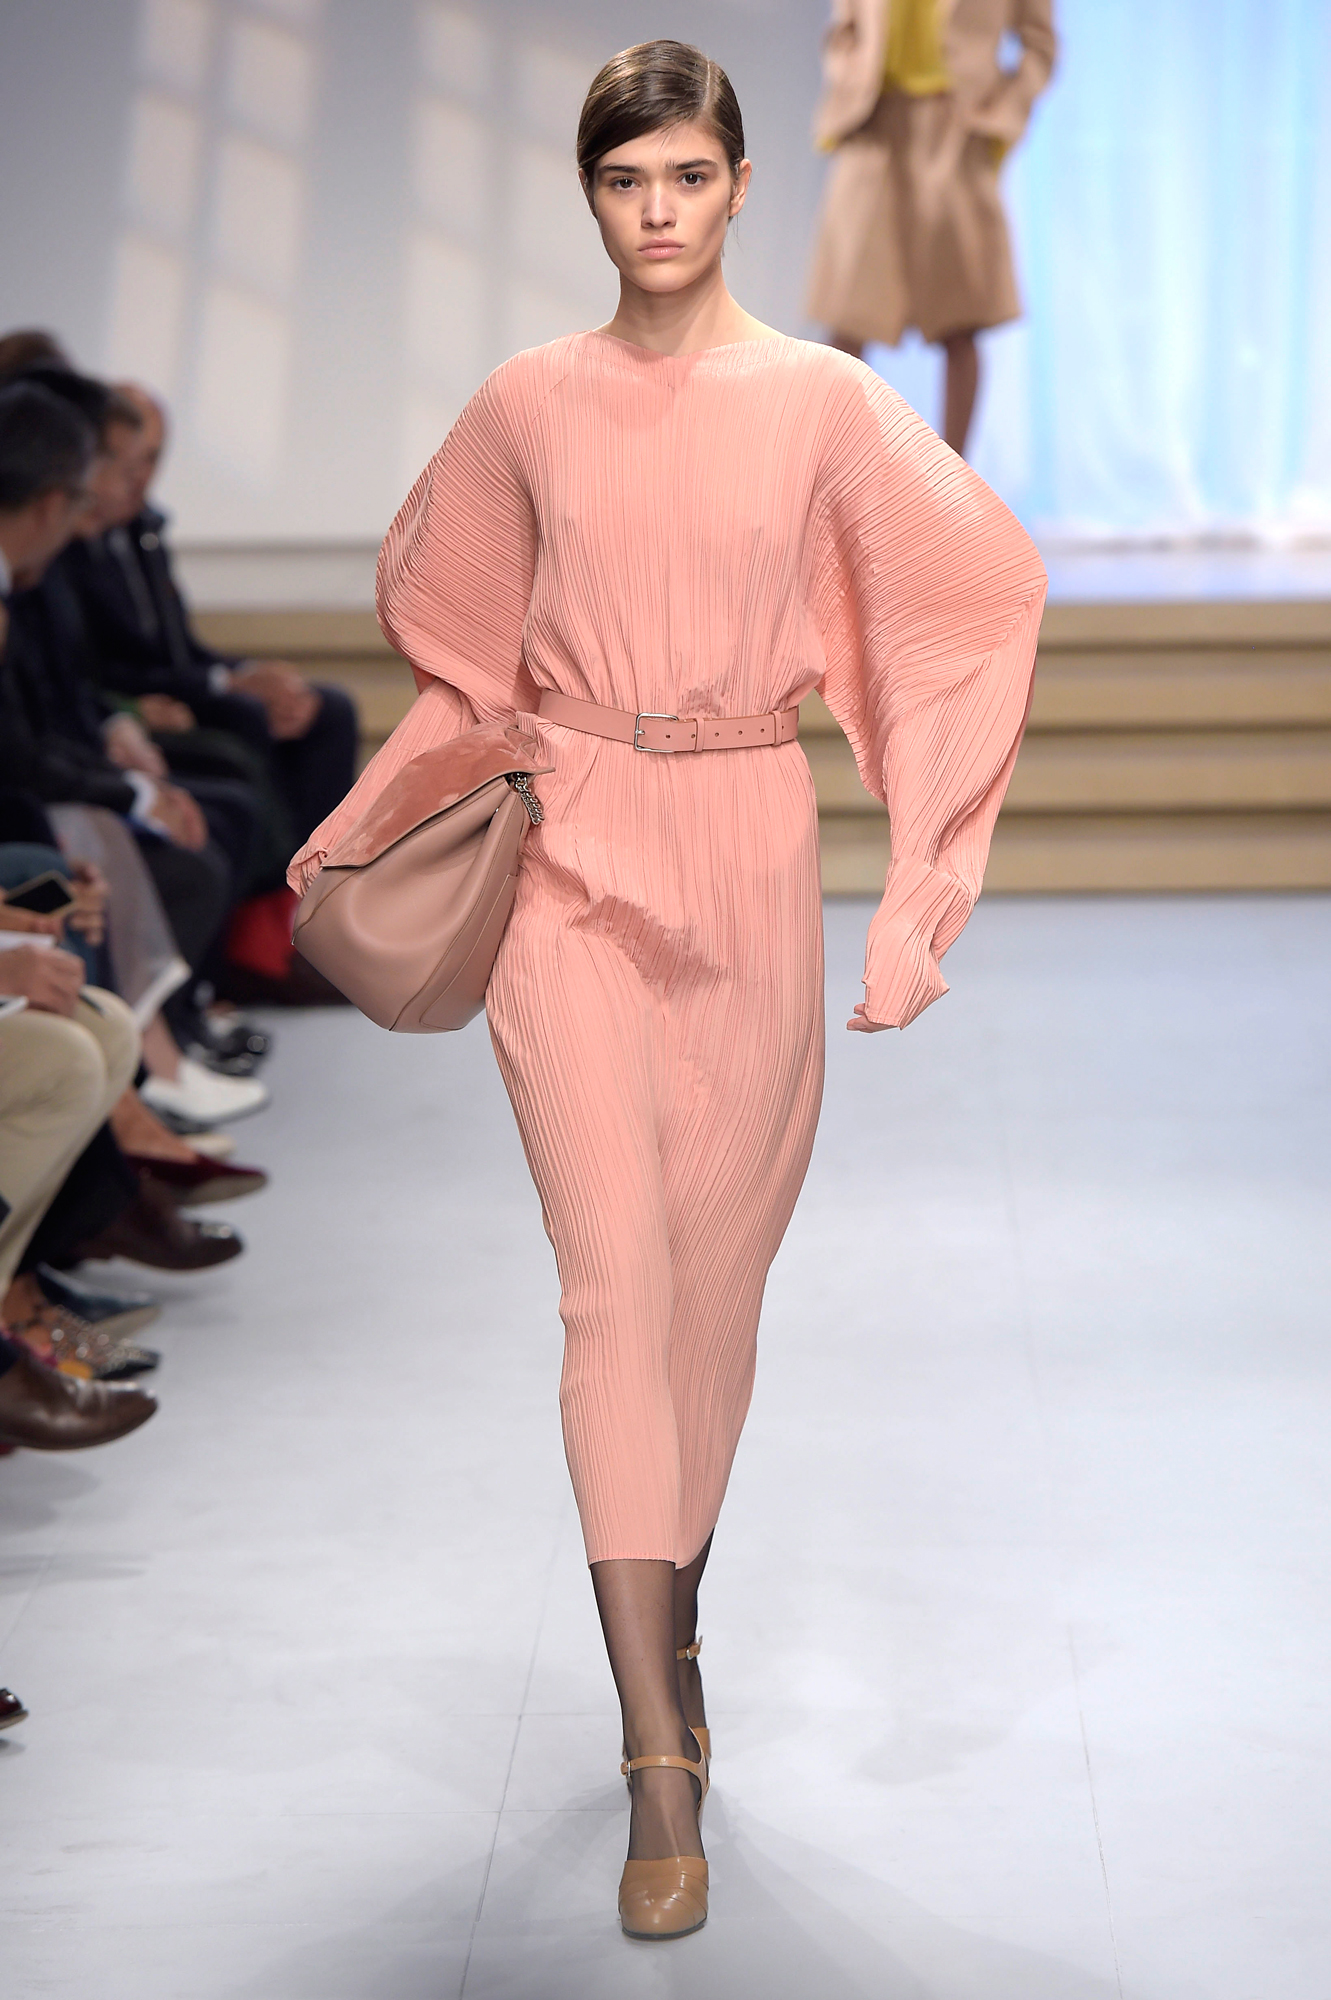 Super Trend! Puffed sleeves plisse silk crepe dress by Jil Sander